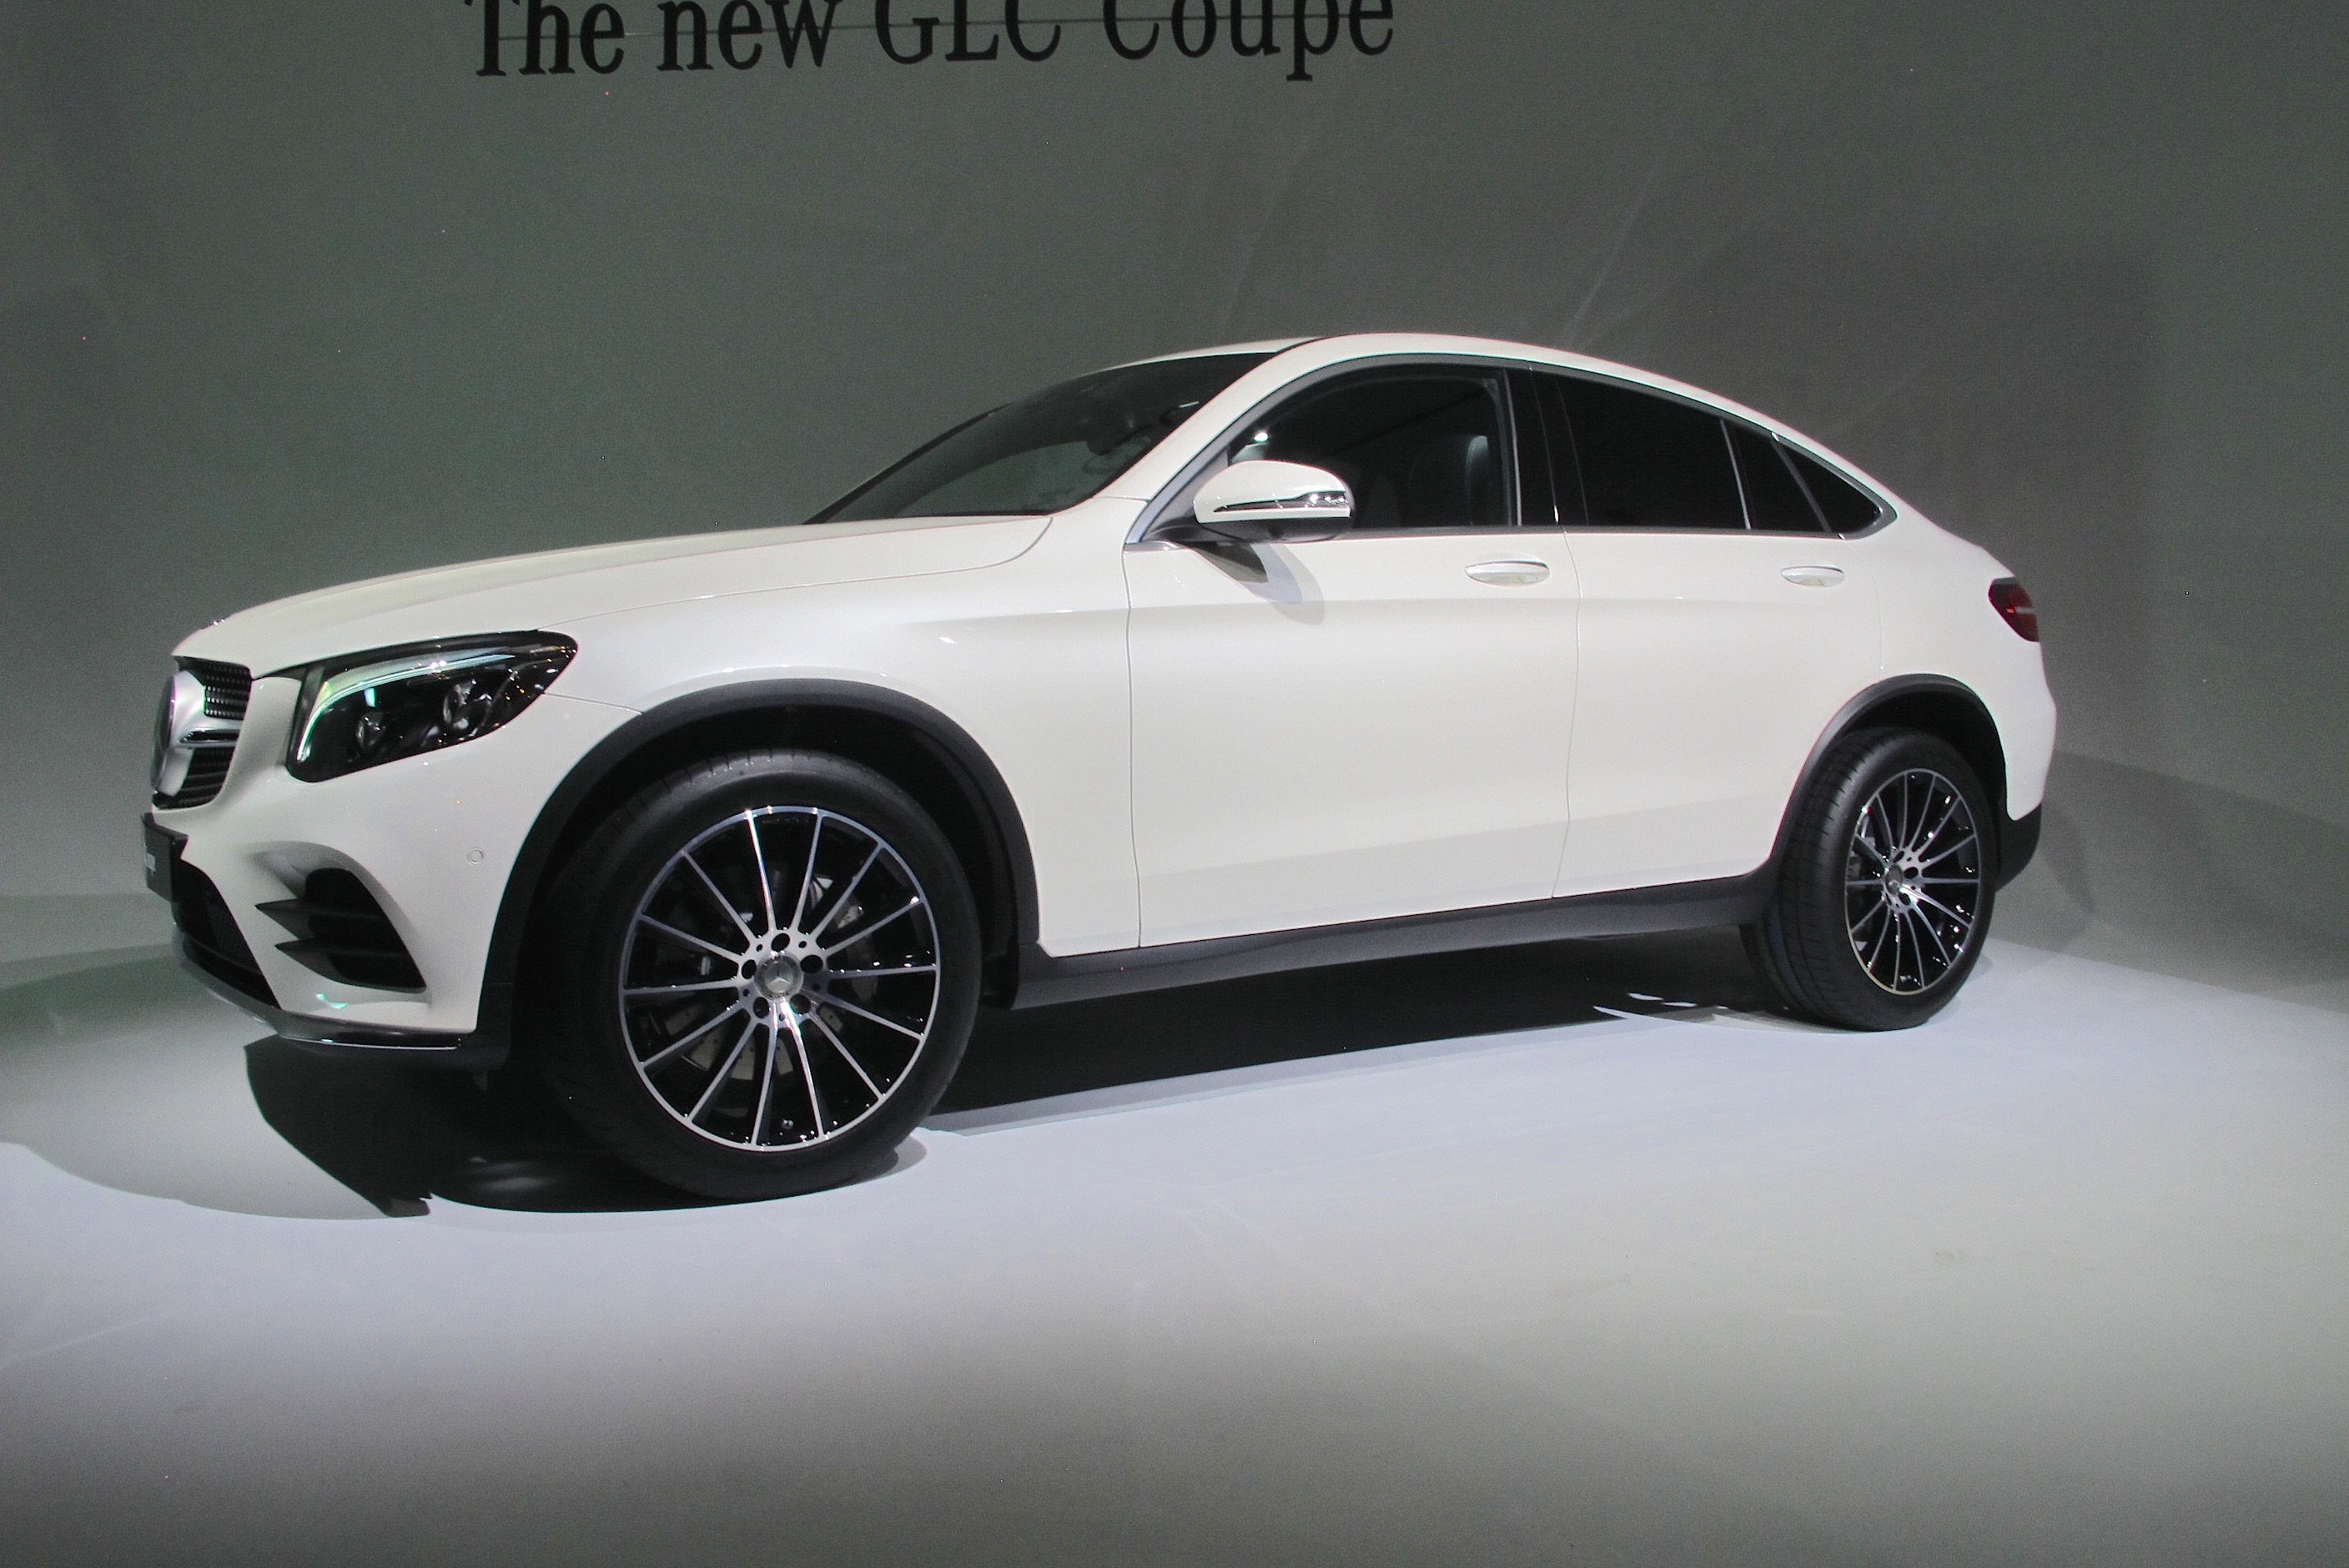 2017 Mercedes-Benz GLC Coupe And GLC43 Preview